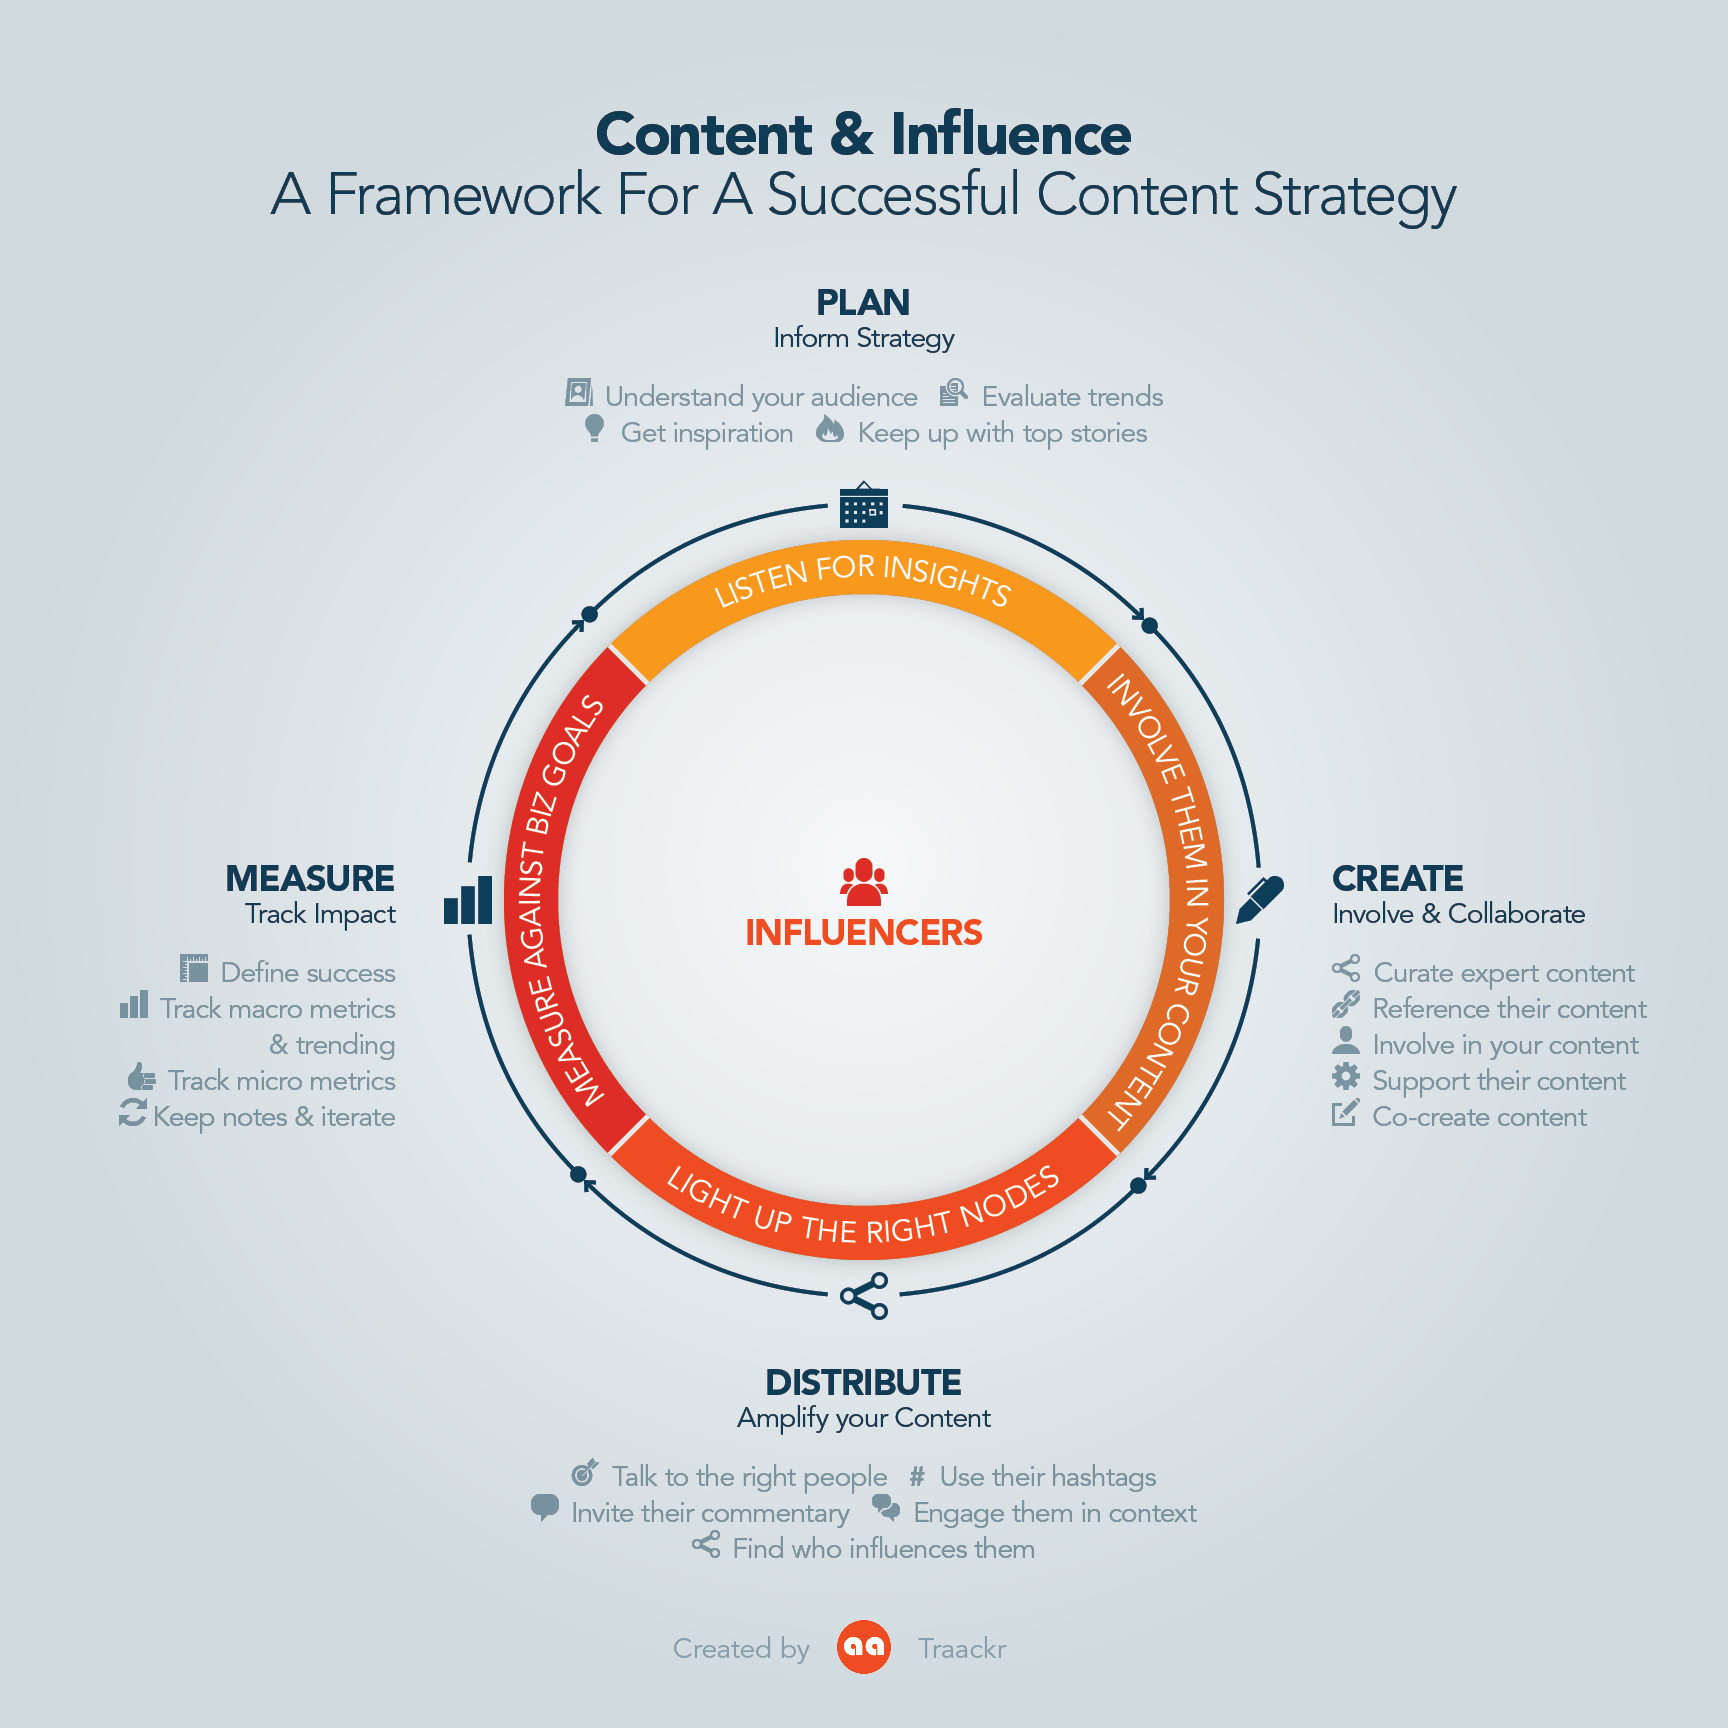 An Infographic displaying the Content marketing and Influencer Strategy Framework